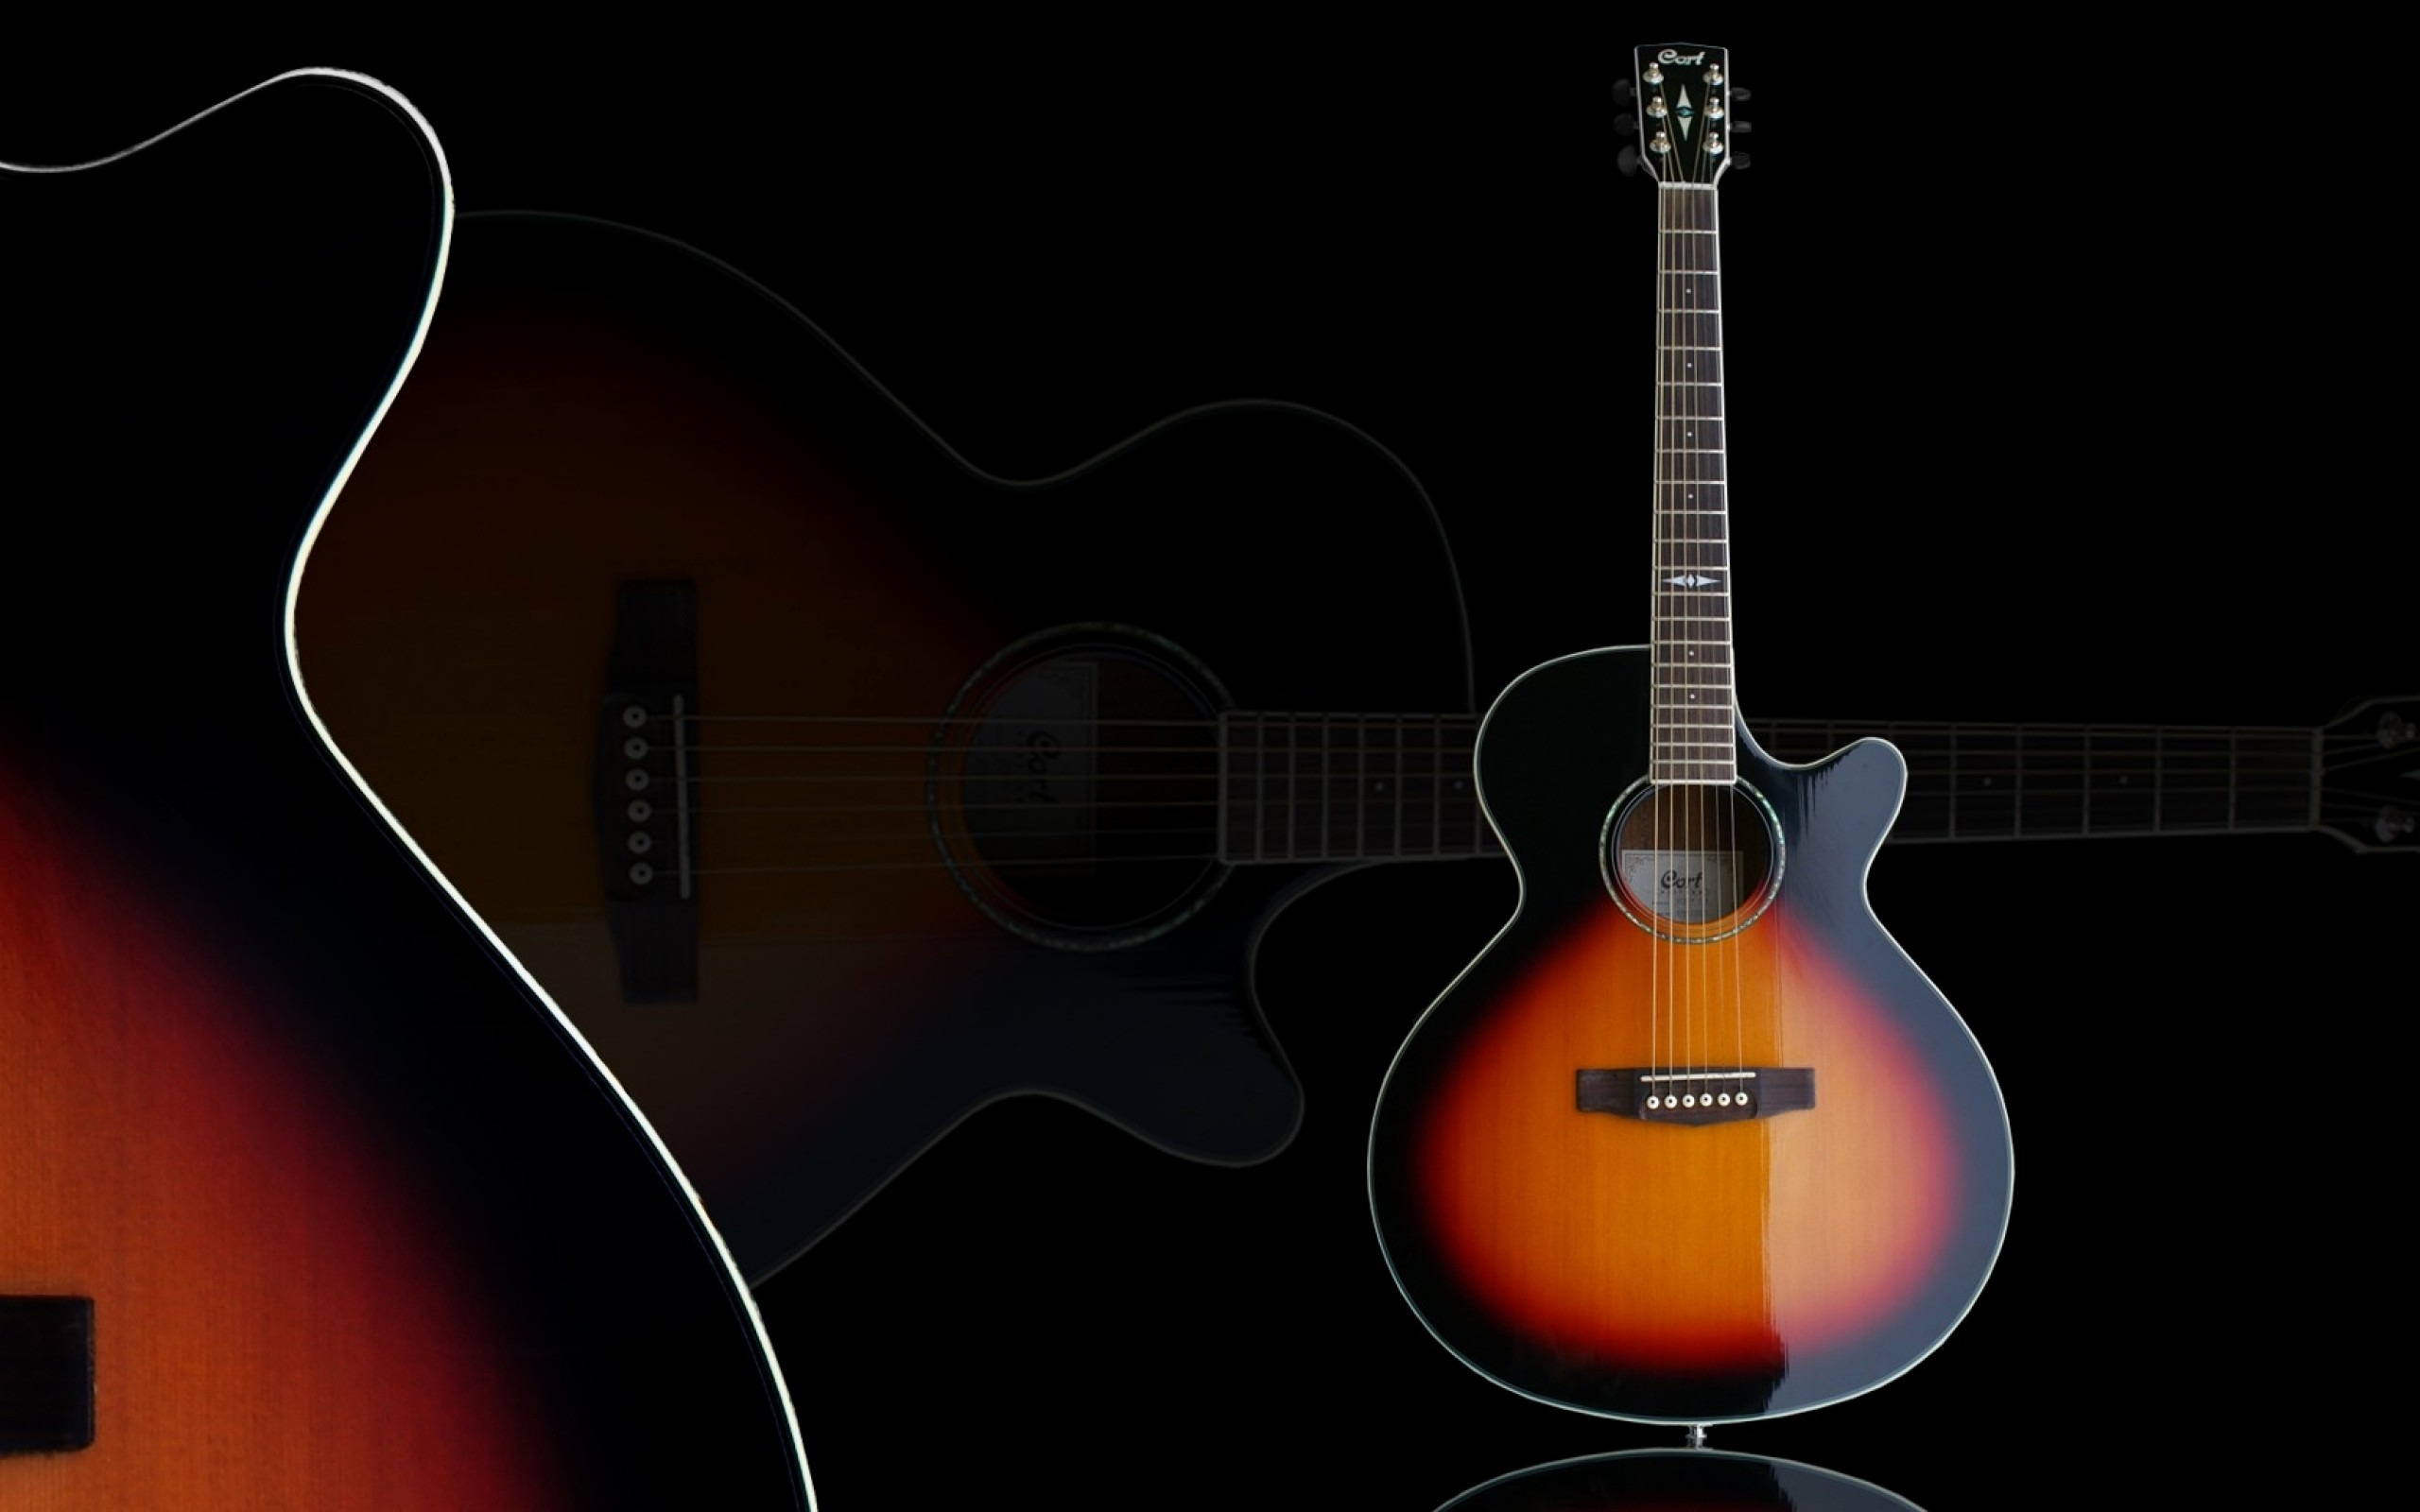 awesome guitar backgrounds 183��